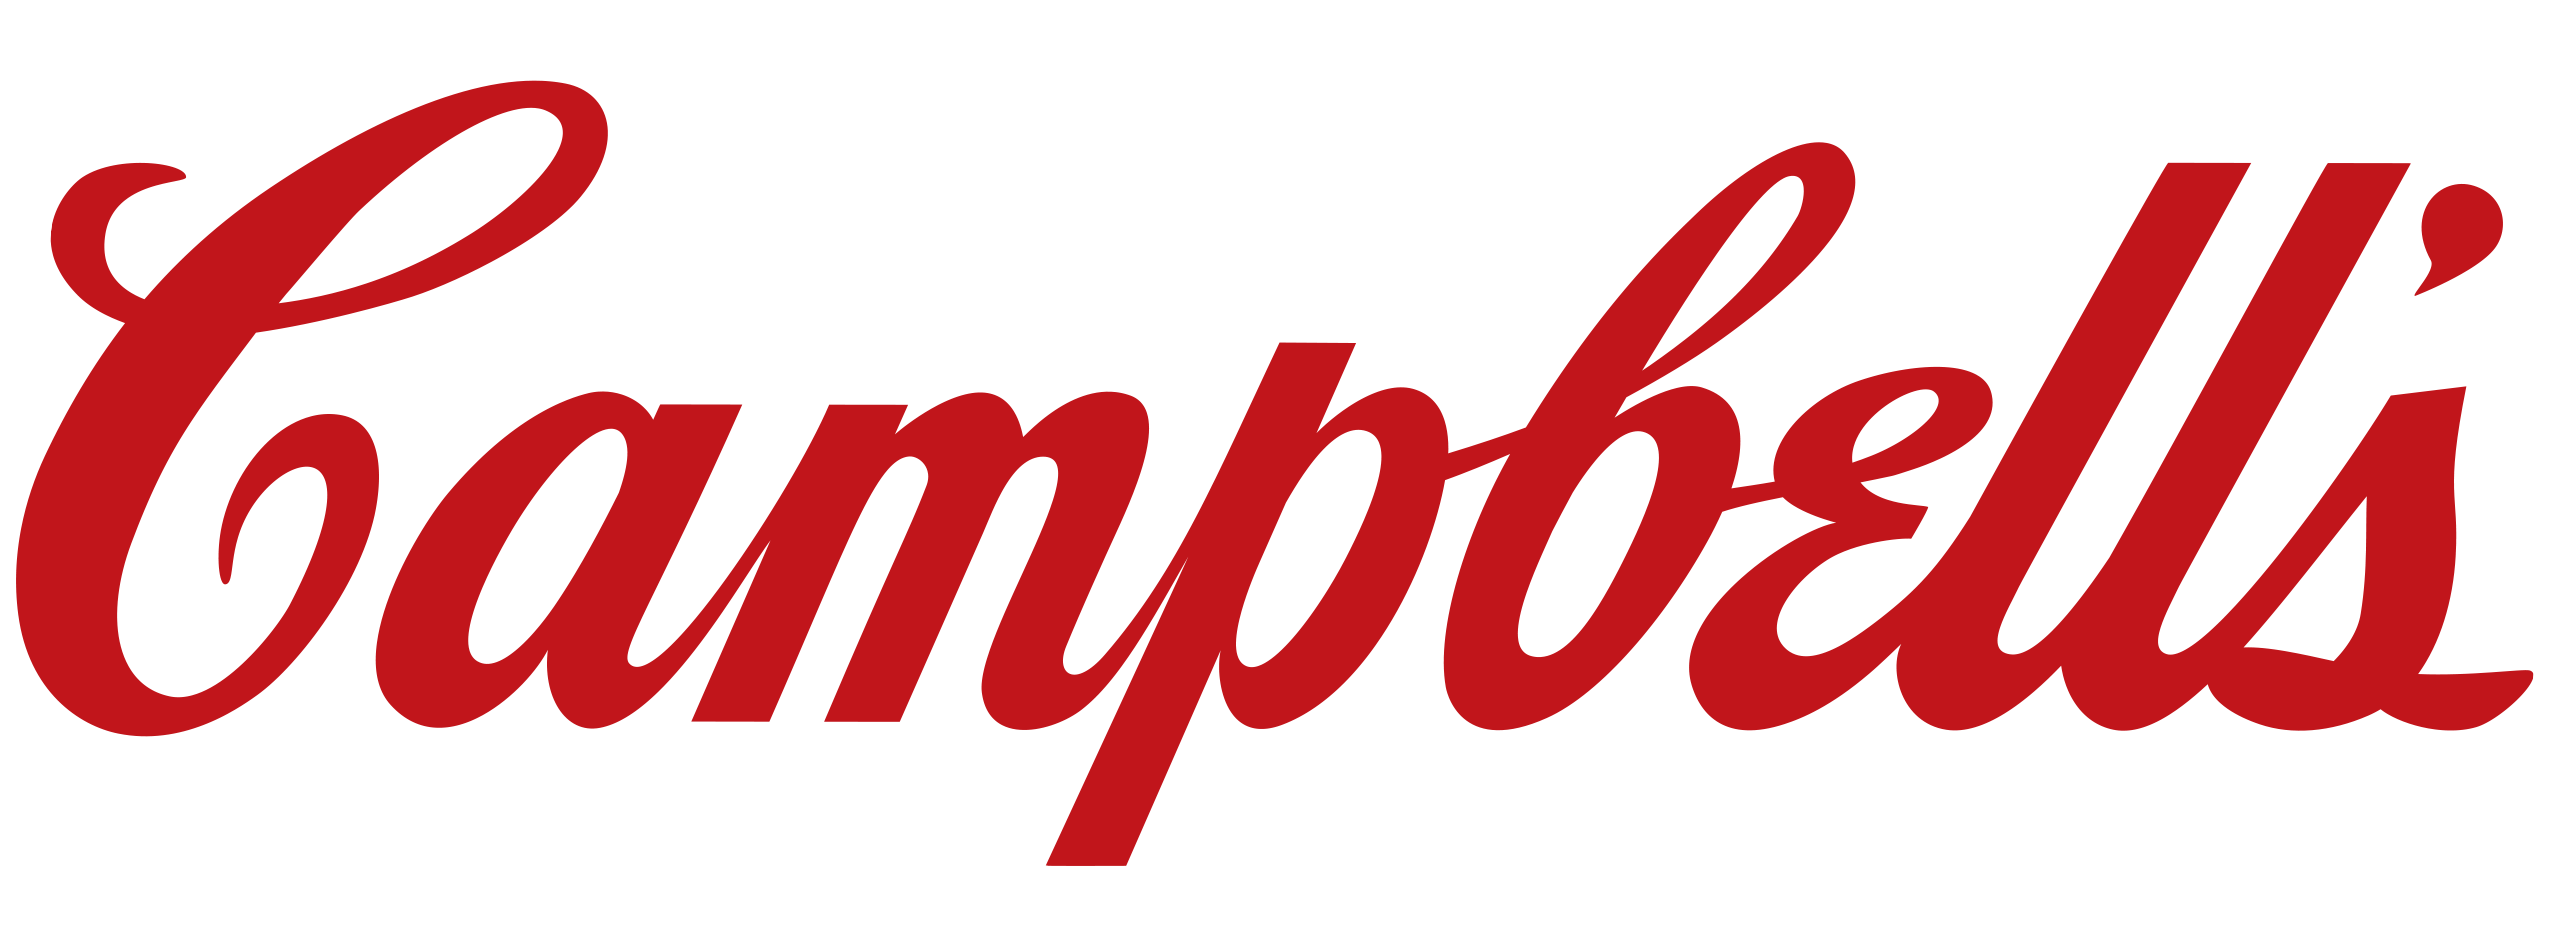 Campbells Soup Foundation